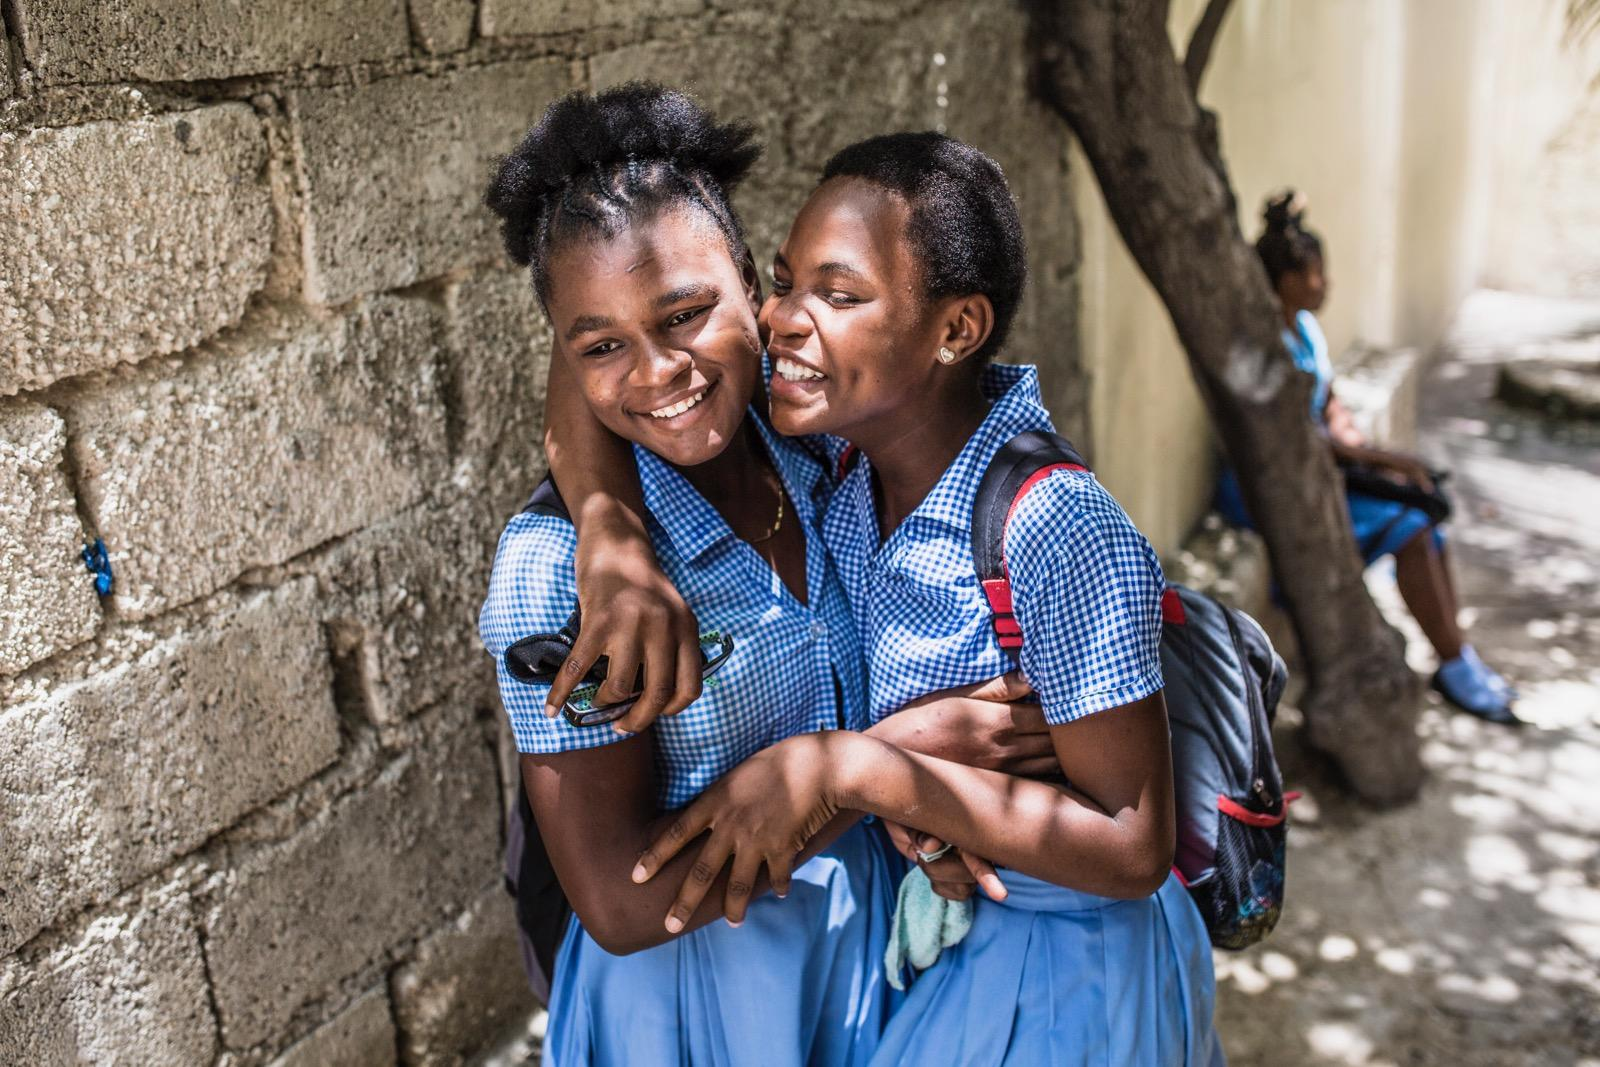 Two school girls hugging each other.